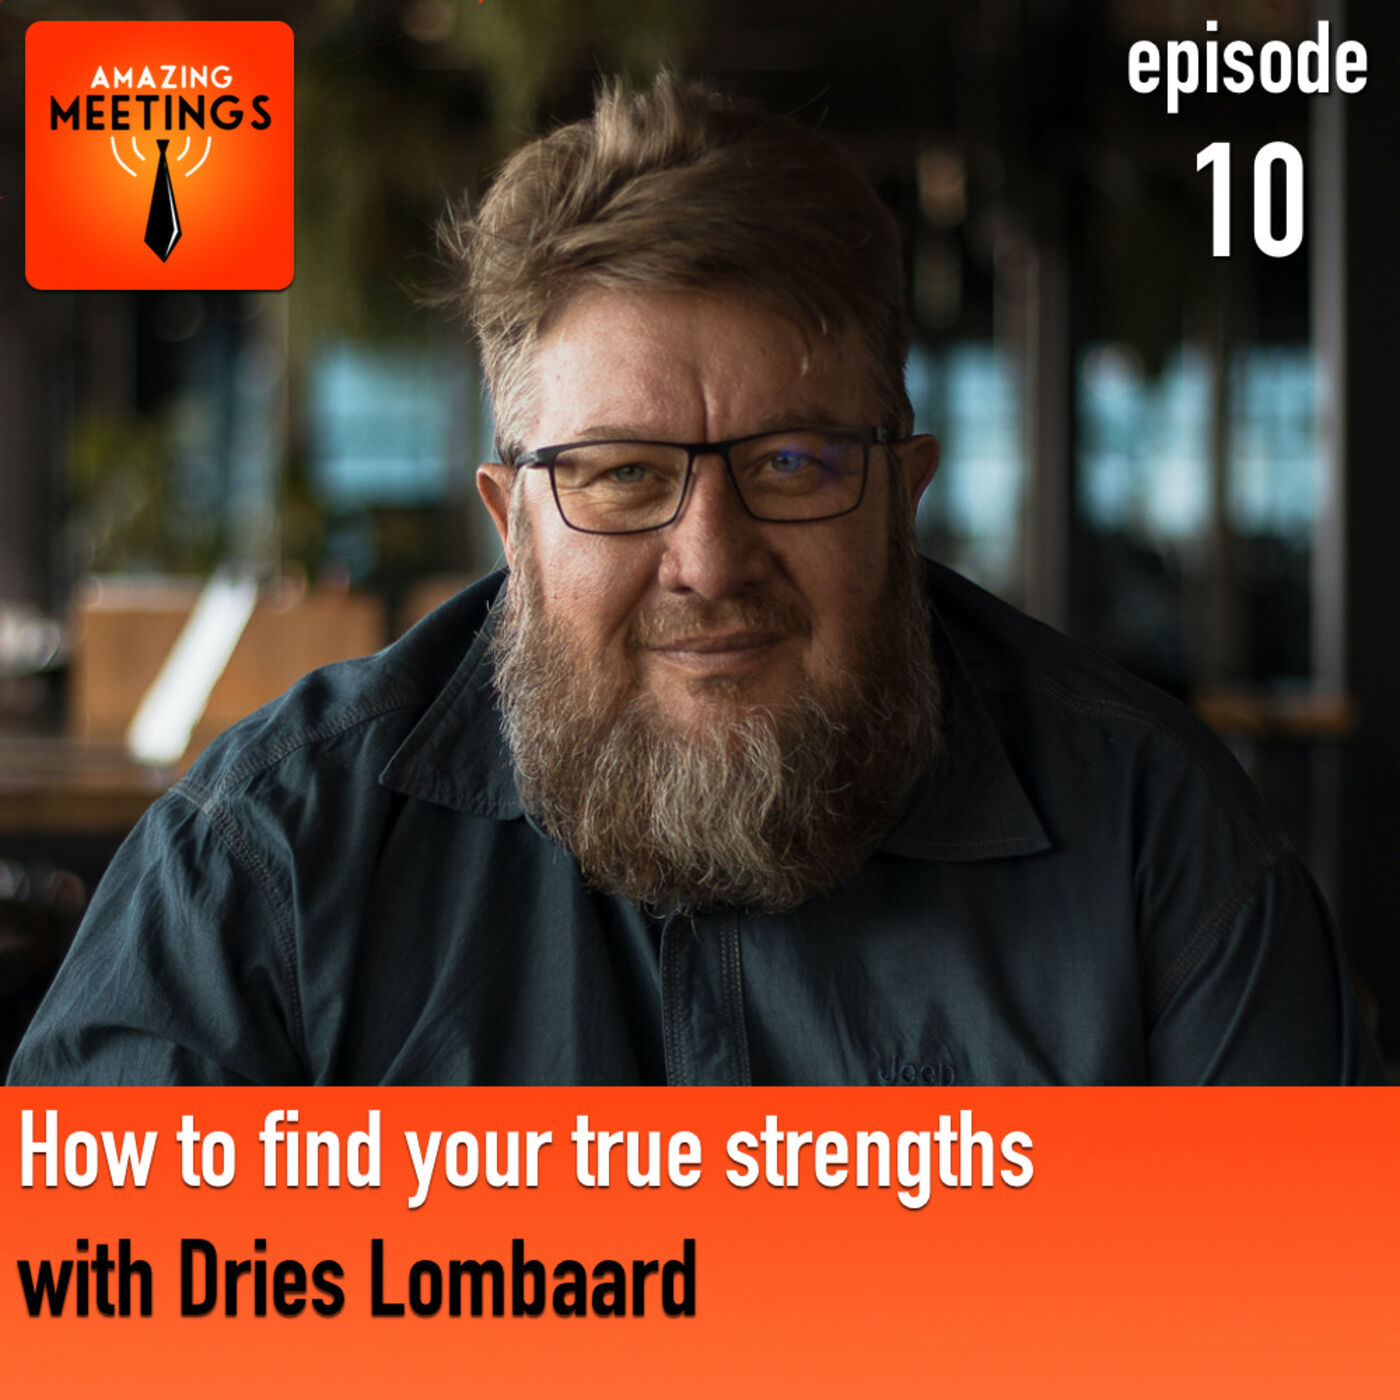 How to find your true strengths with Dries Lombaard